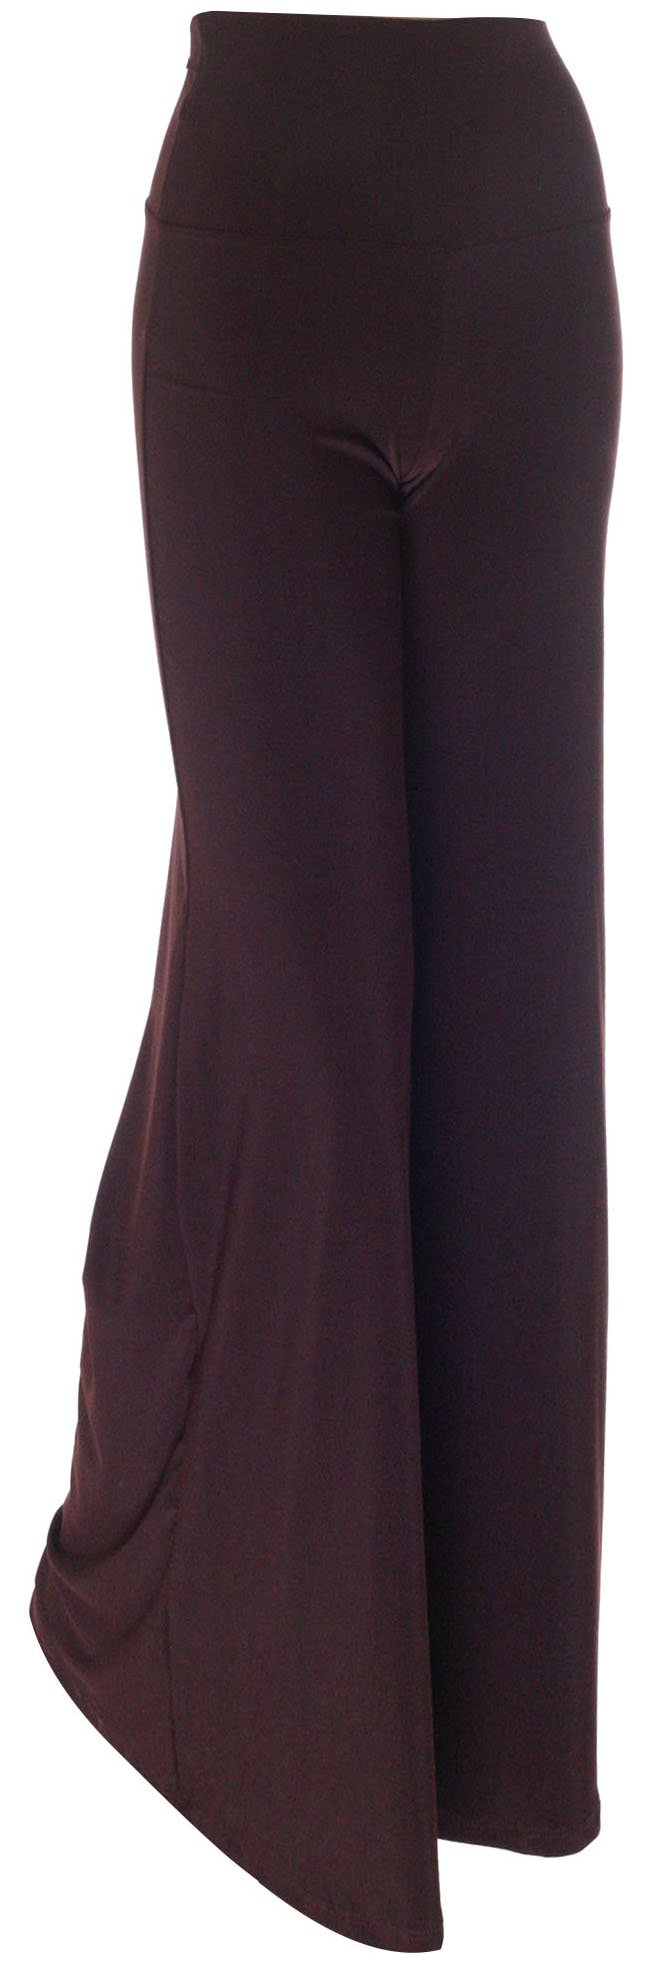 Simplicity Solid Palazzo Pants Foldover High Waist Flare Bell Bottom, Brown, S